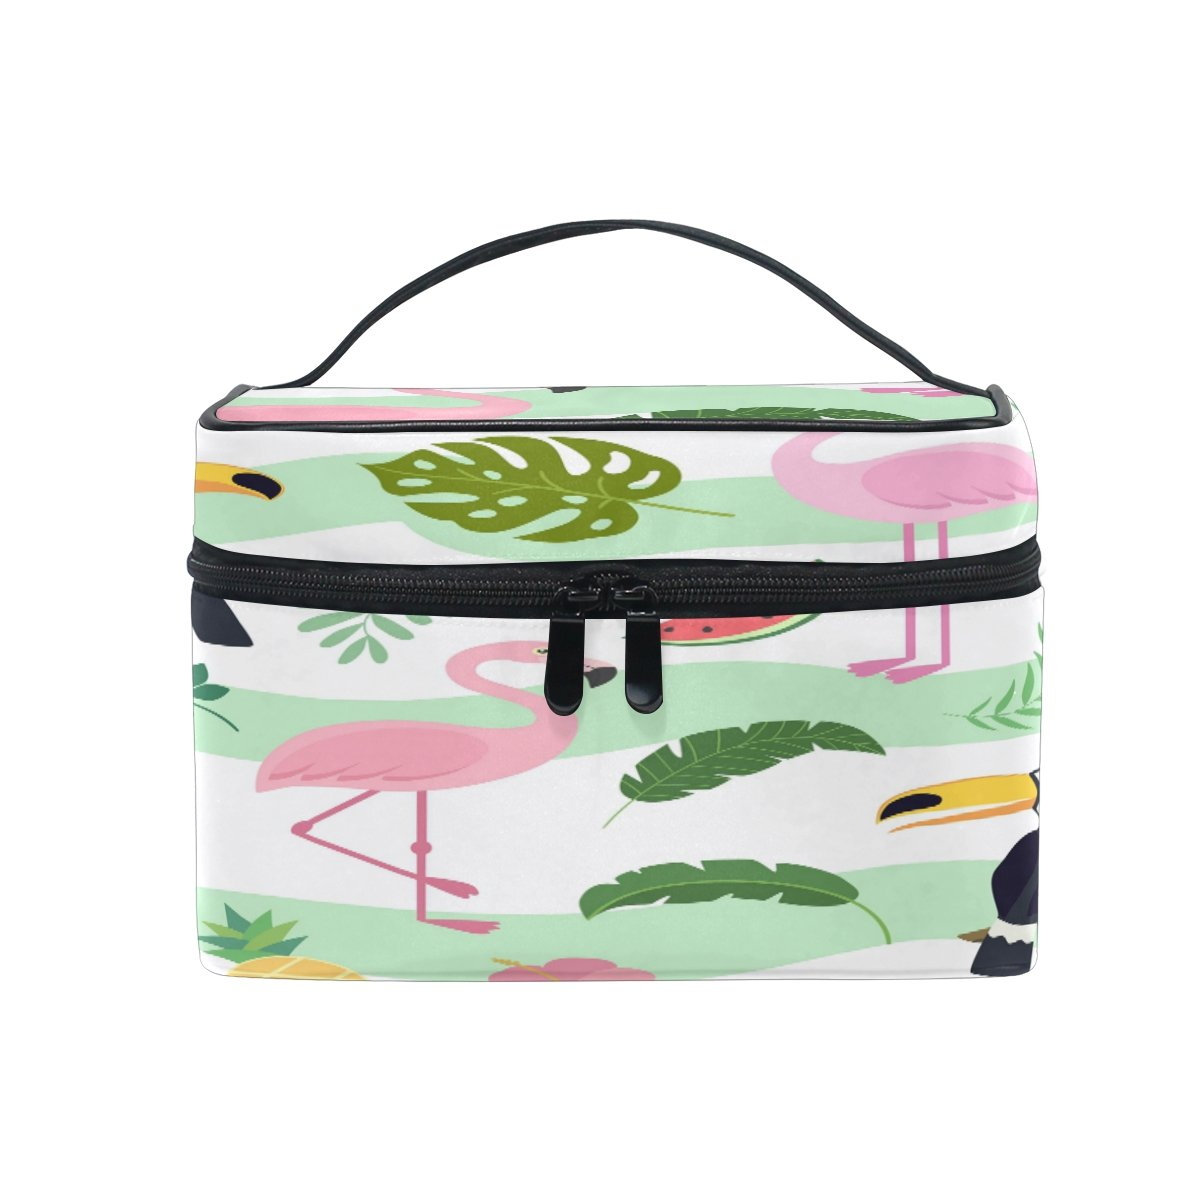 THUNANA Animals Multifunction Makeup Storage Organizer Case Handle Toiletry Cosmetic Portable Pouch Bag for Women Girl